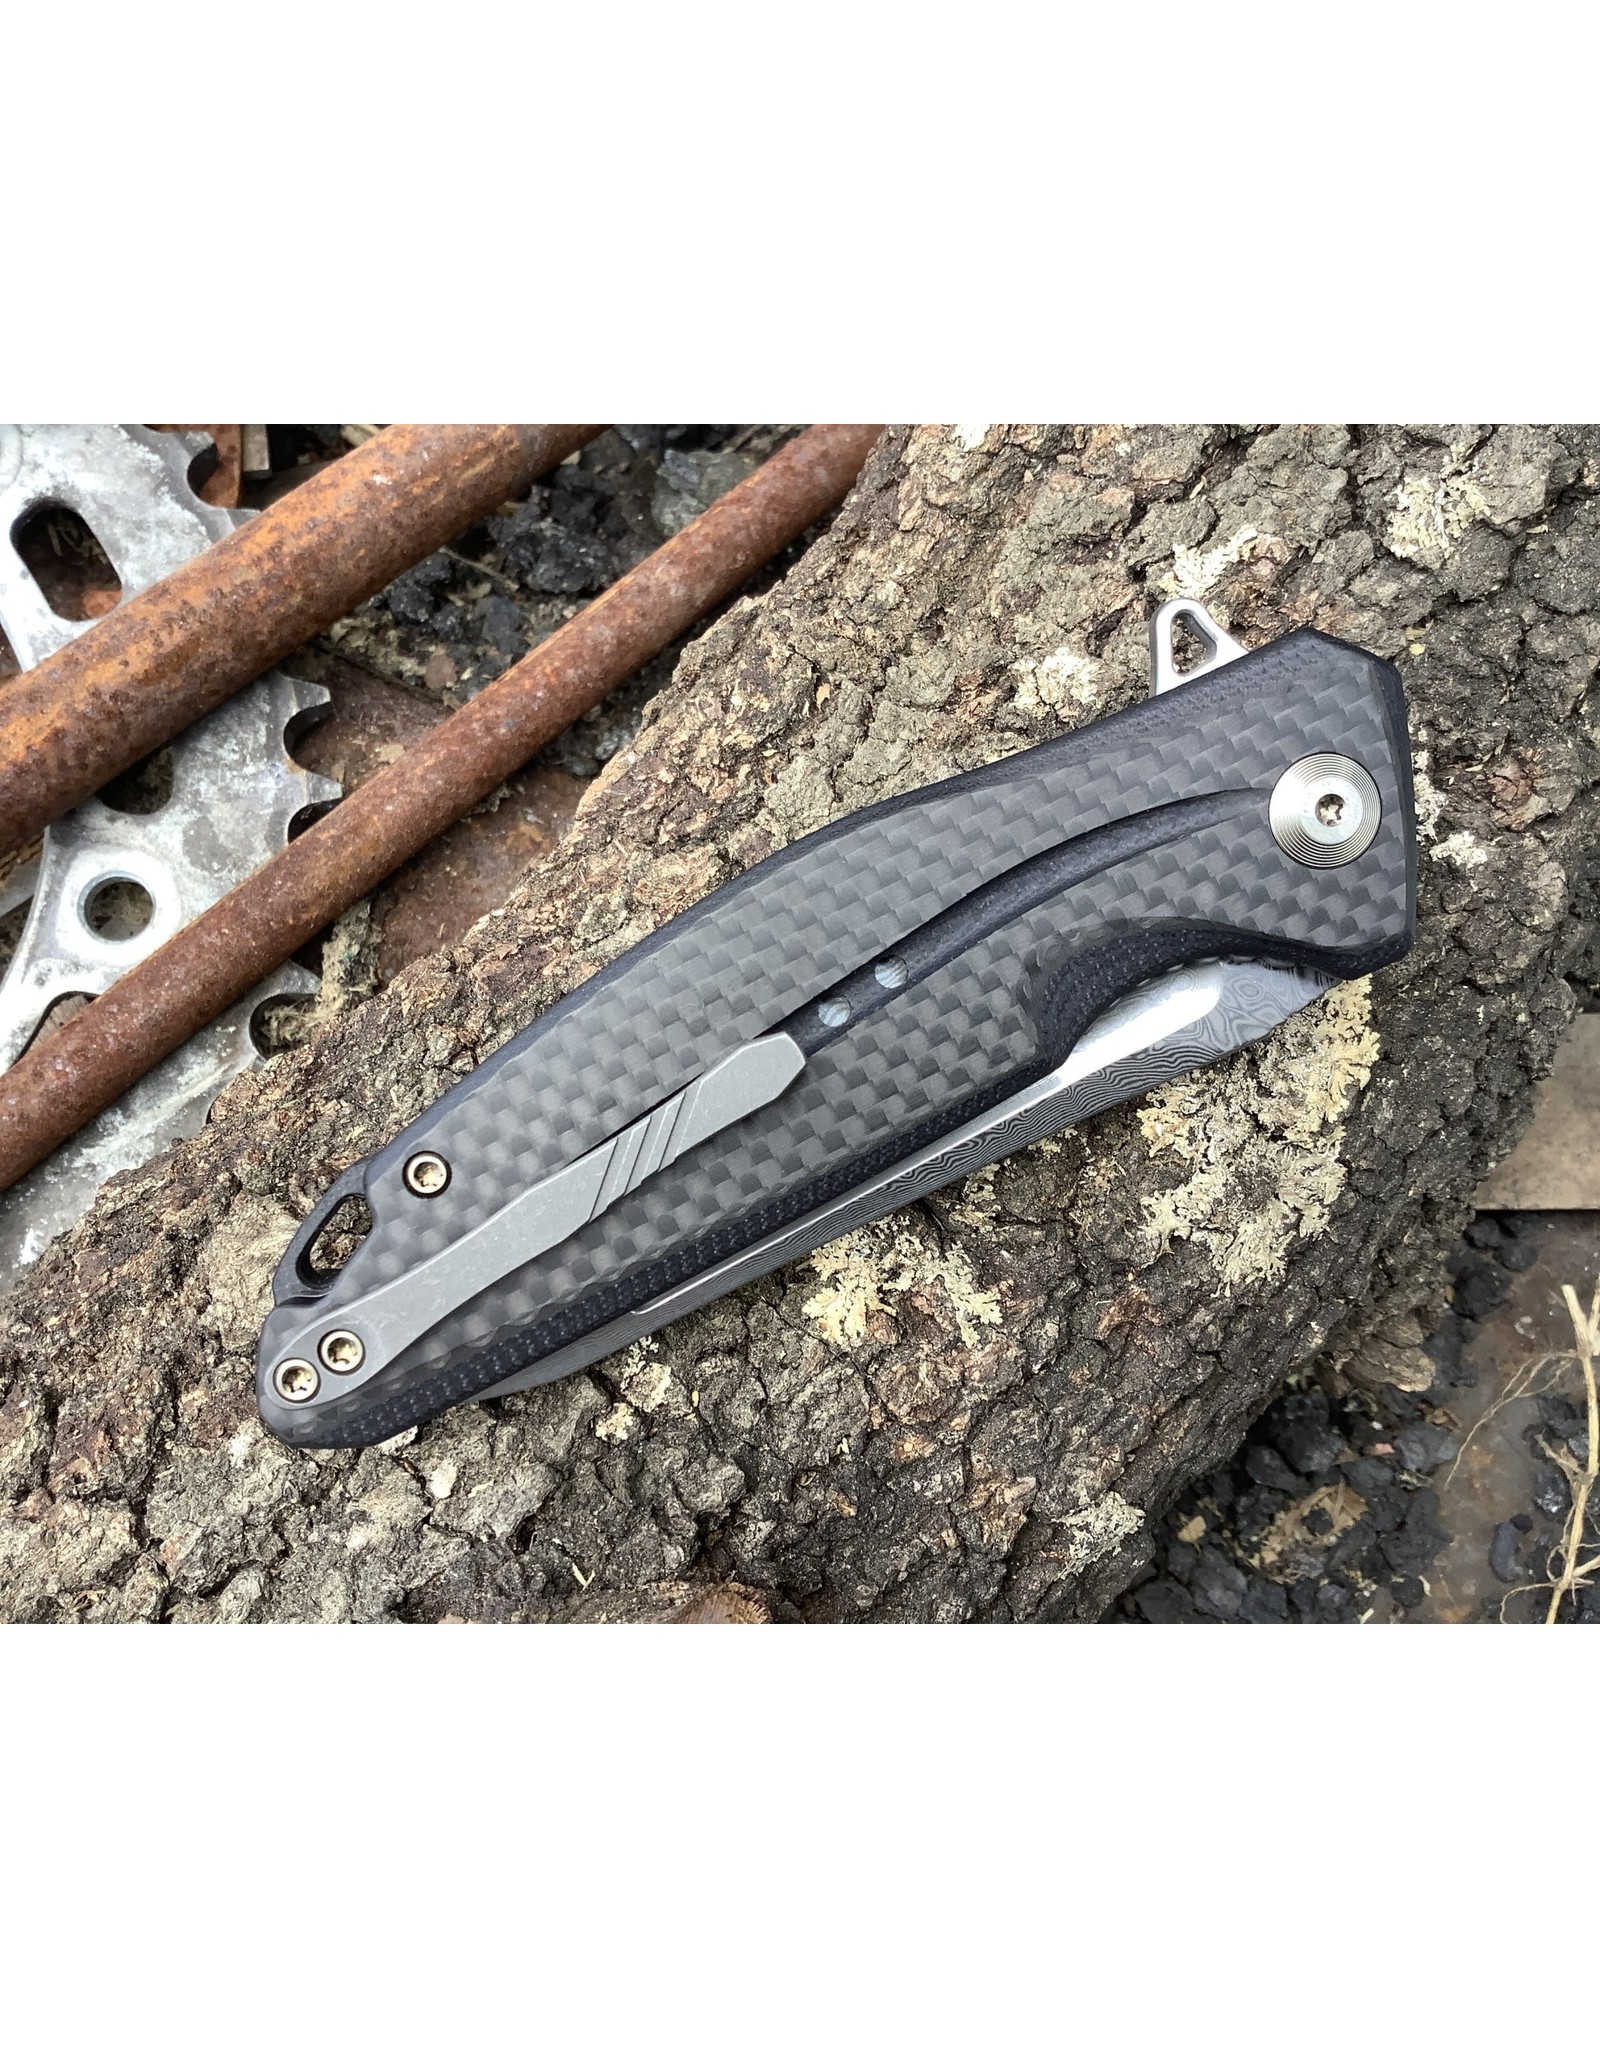 Civivi Statera Damascus with Black G-10 and Carbon Fiber handle